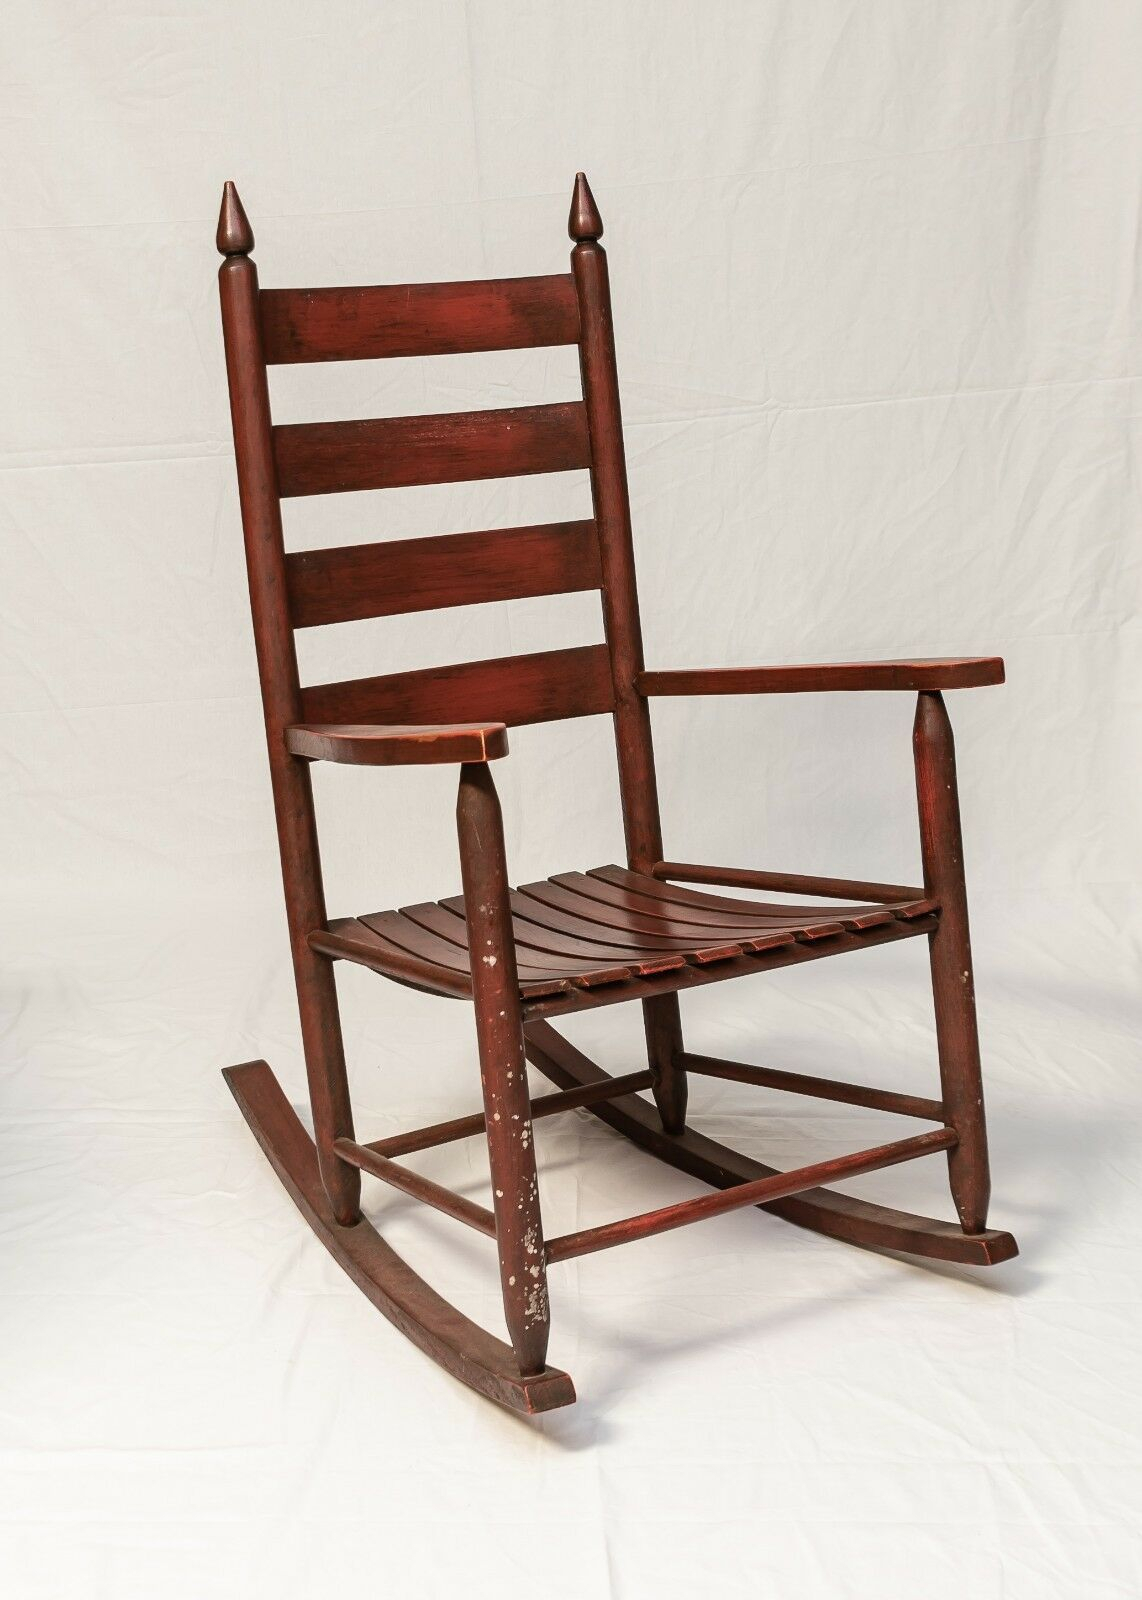 Inspiration about Mid 20Th Century Vintage American Ladder Back Rocking Chair Pertaining To Tobacco Brown Wooden Rocking Chairs (#8 of 20)